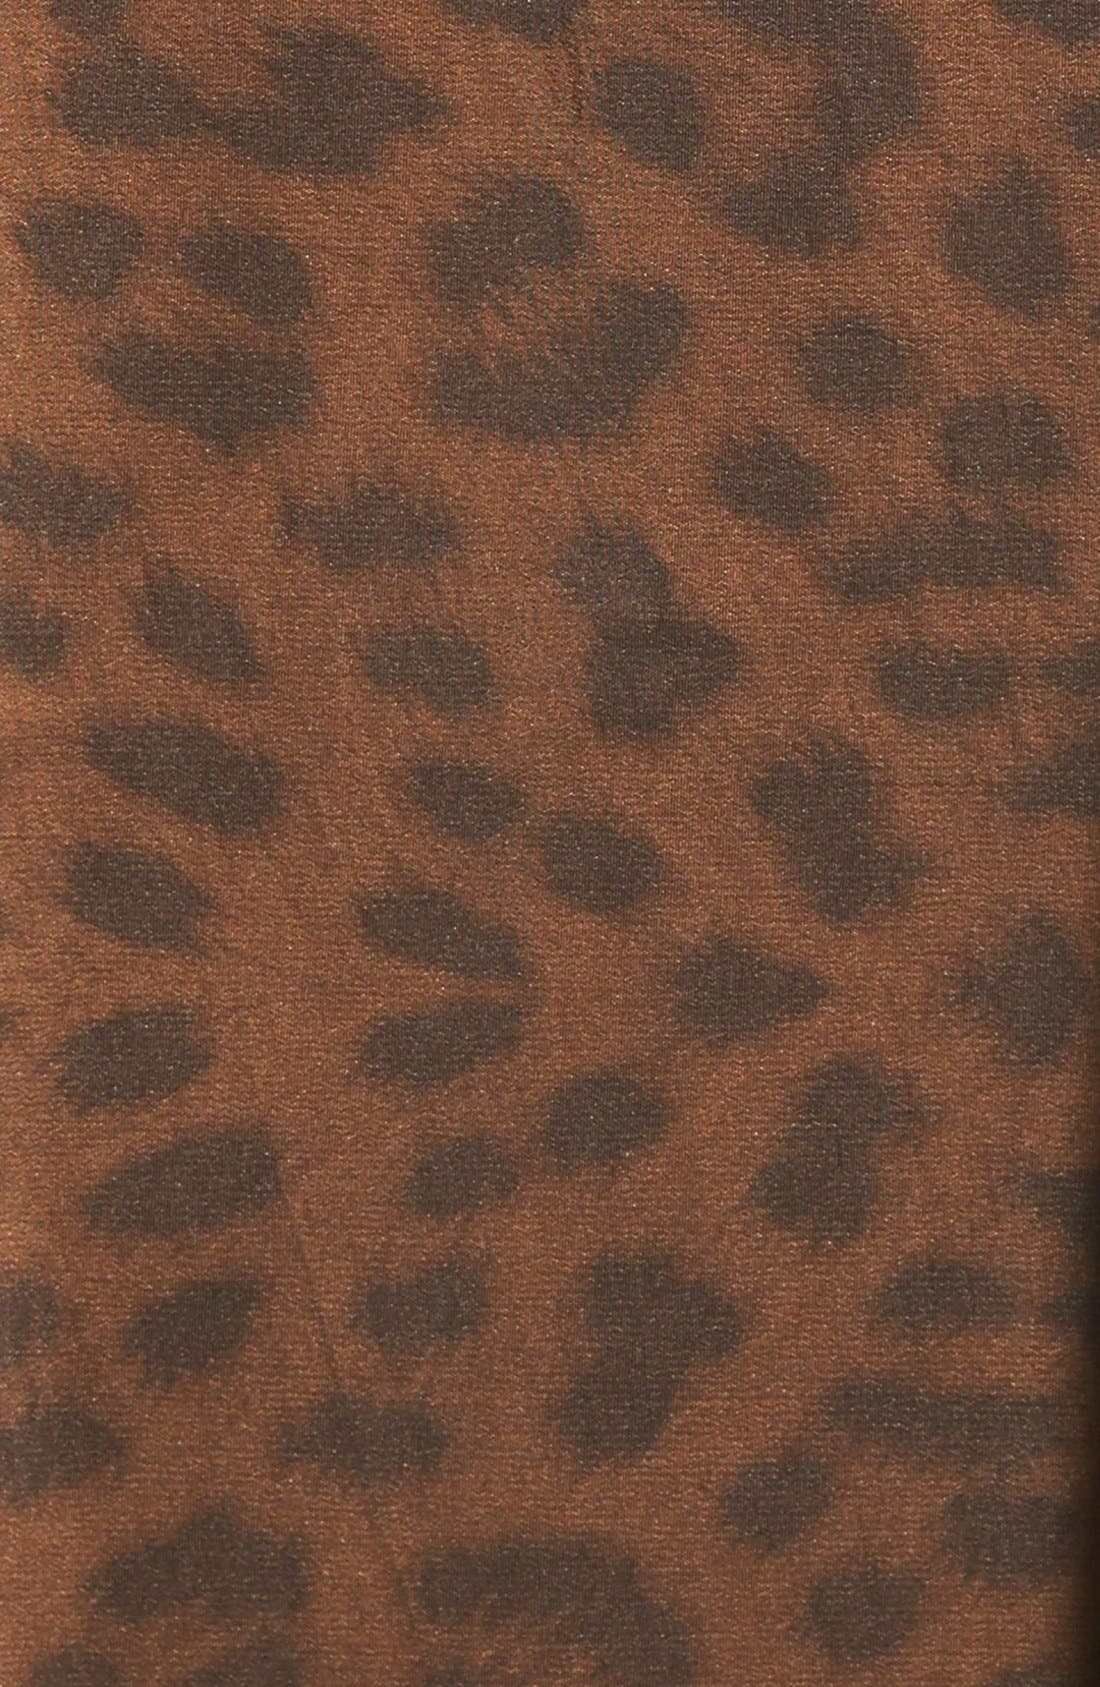 'Mini Donatella Leopard' Reversible Pleat Hood Packable Travel Coat,                             Alternate thumbnail 9, color,                             202